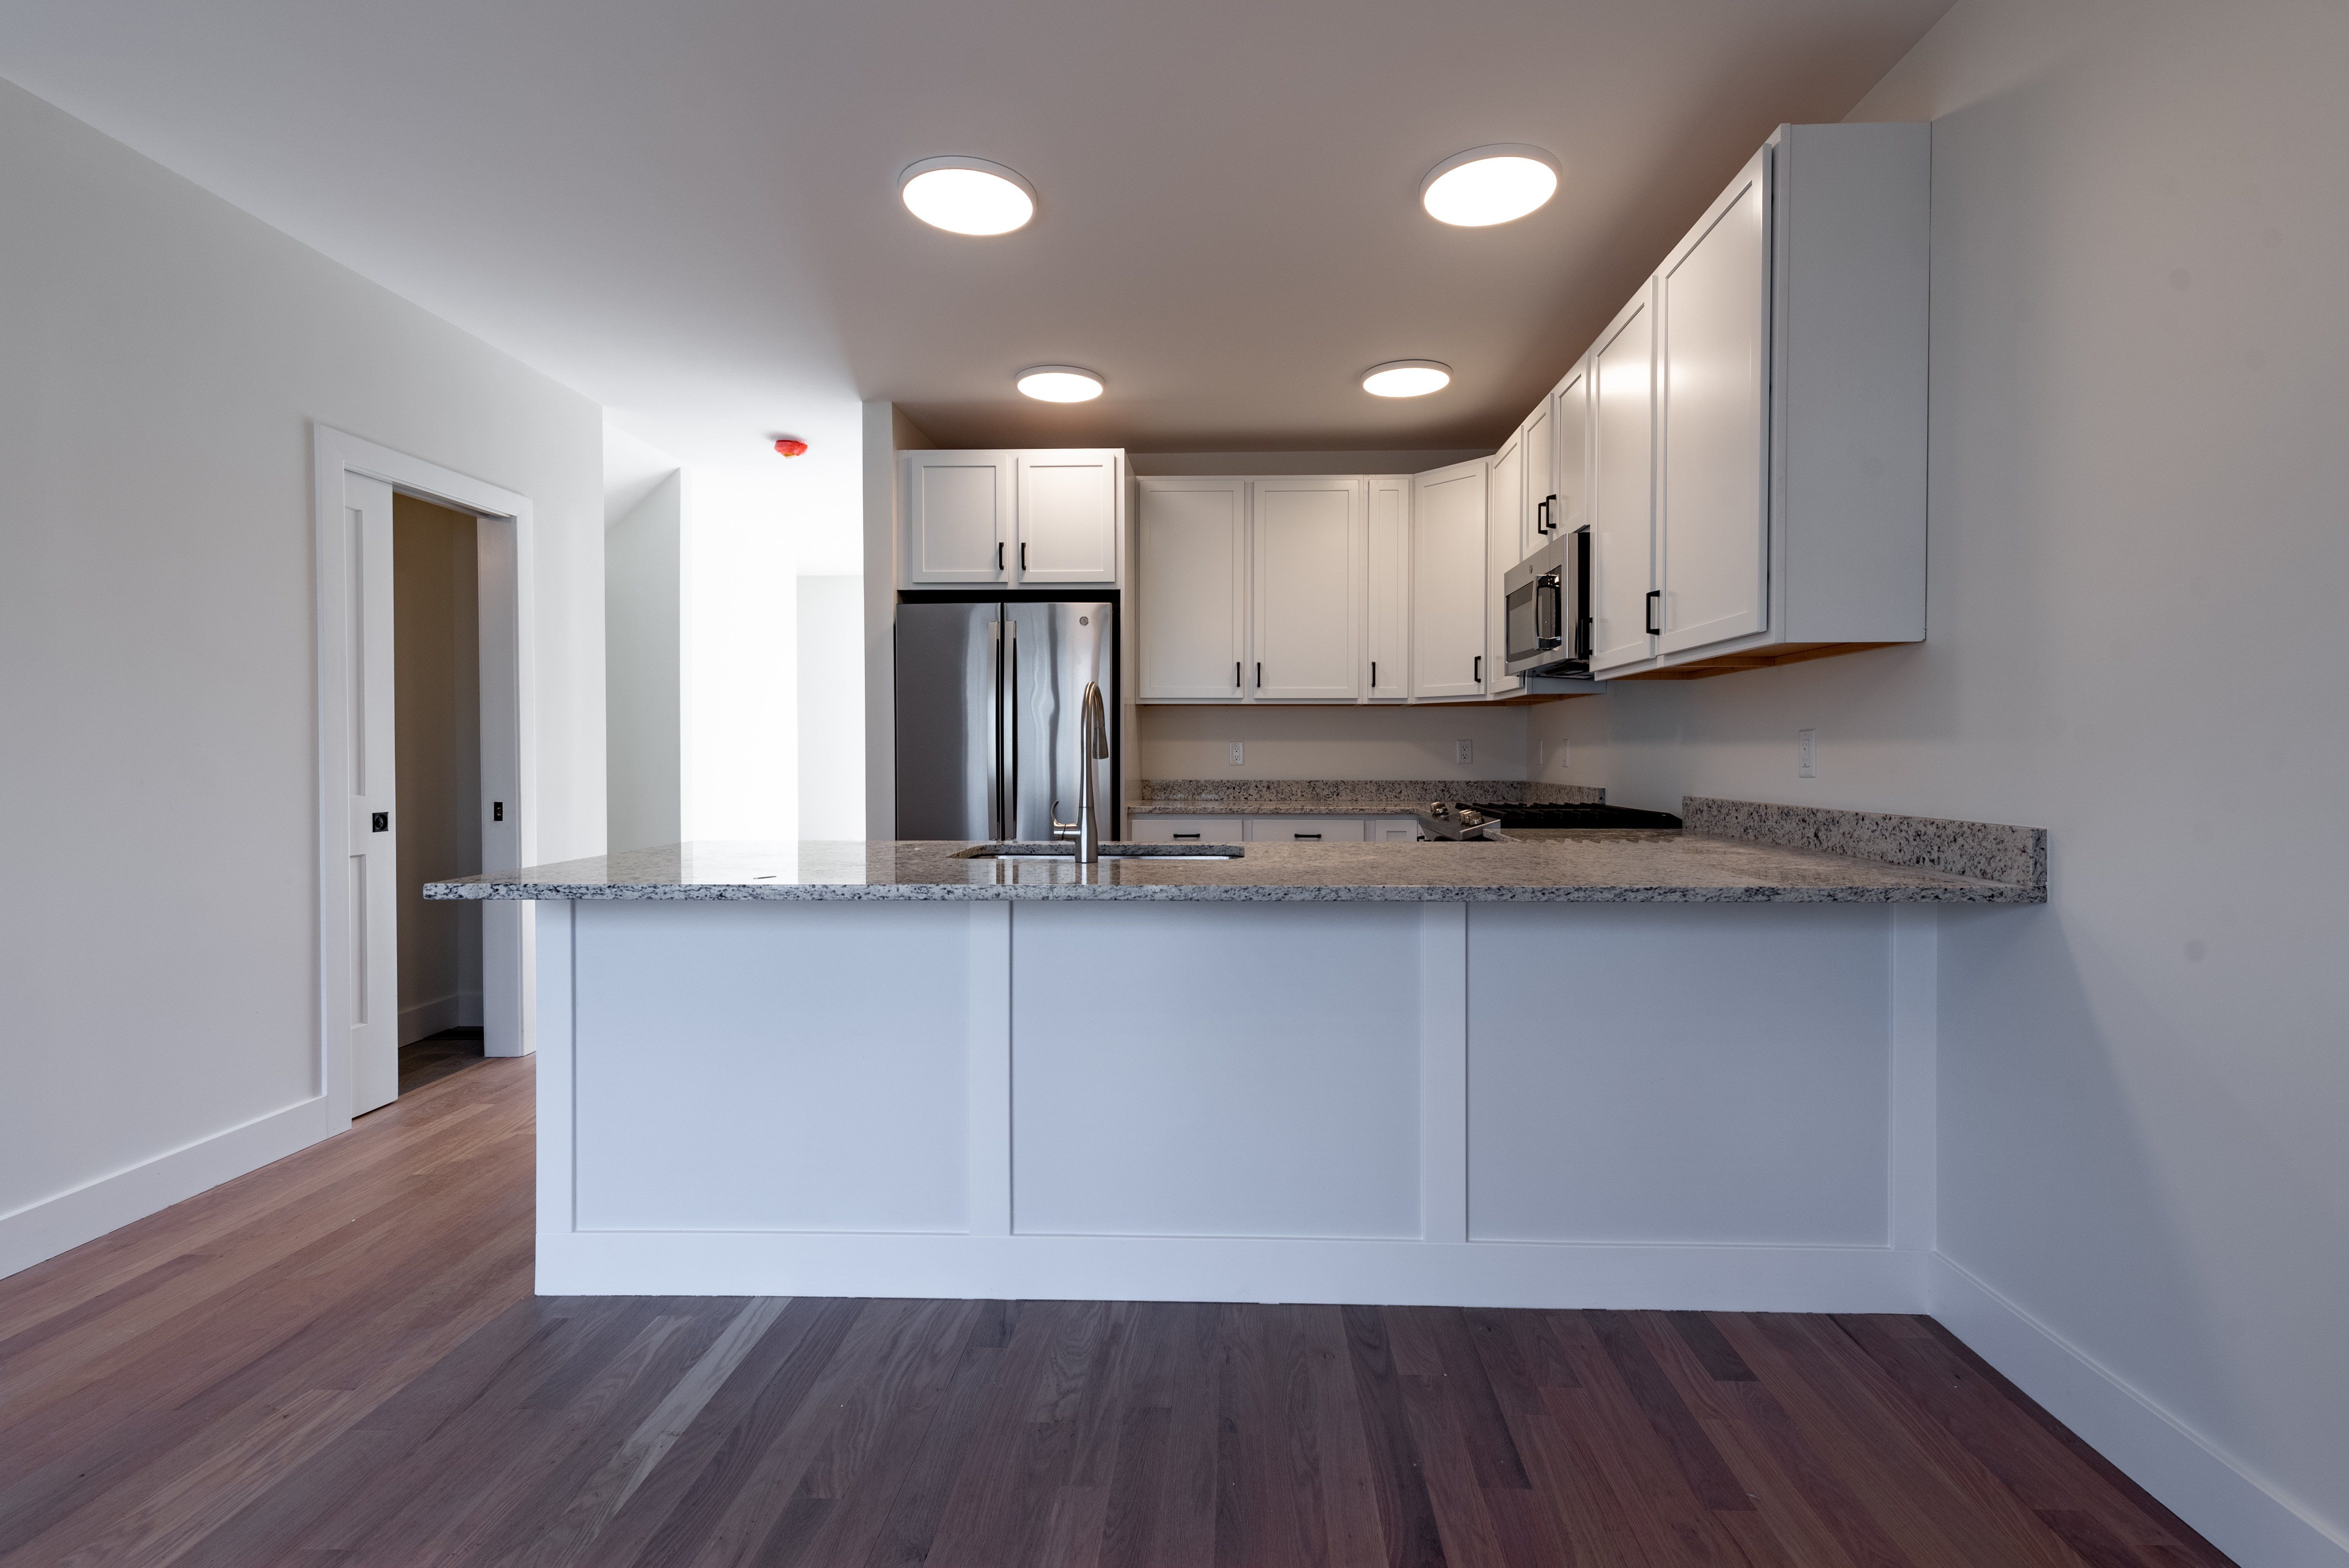 Kitchen featured in the Plan A3 By Calcagni Real Estate in New Haven-Meriden, CT